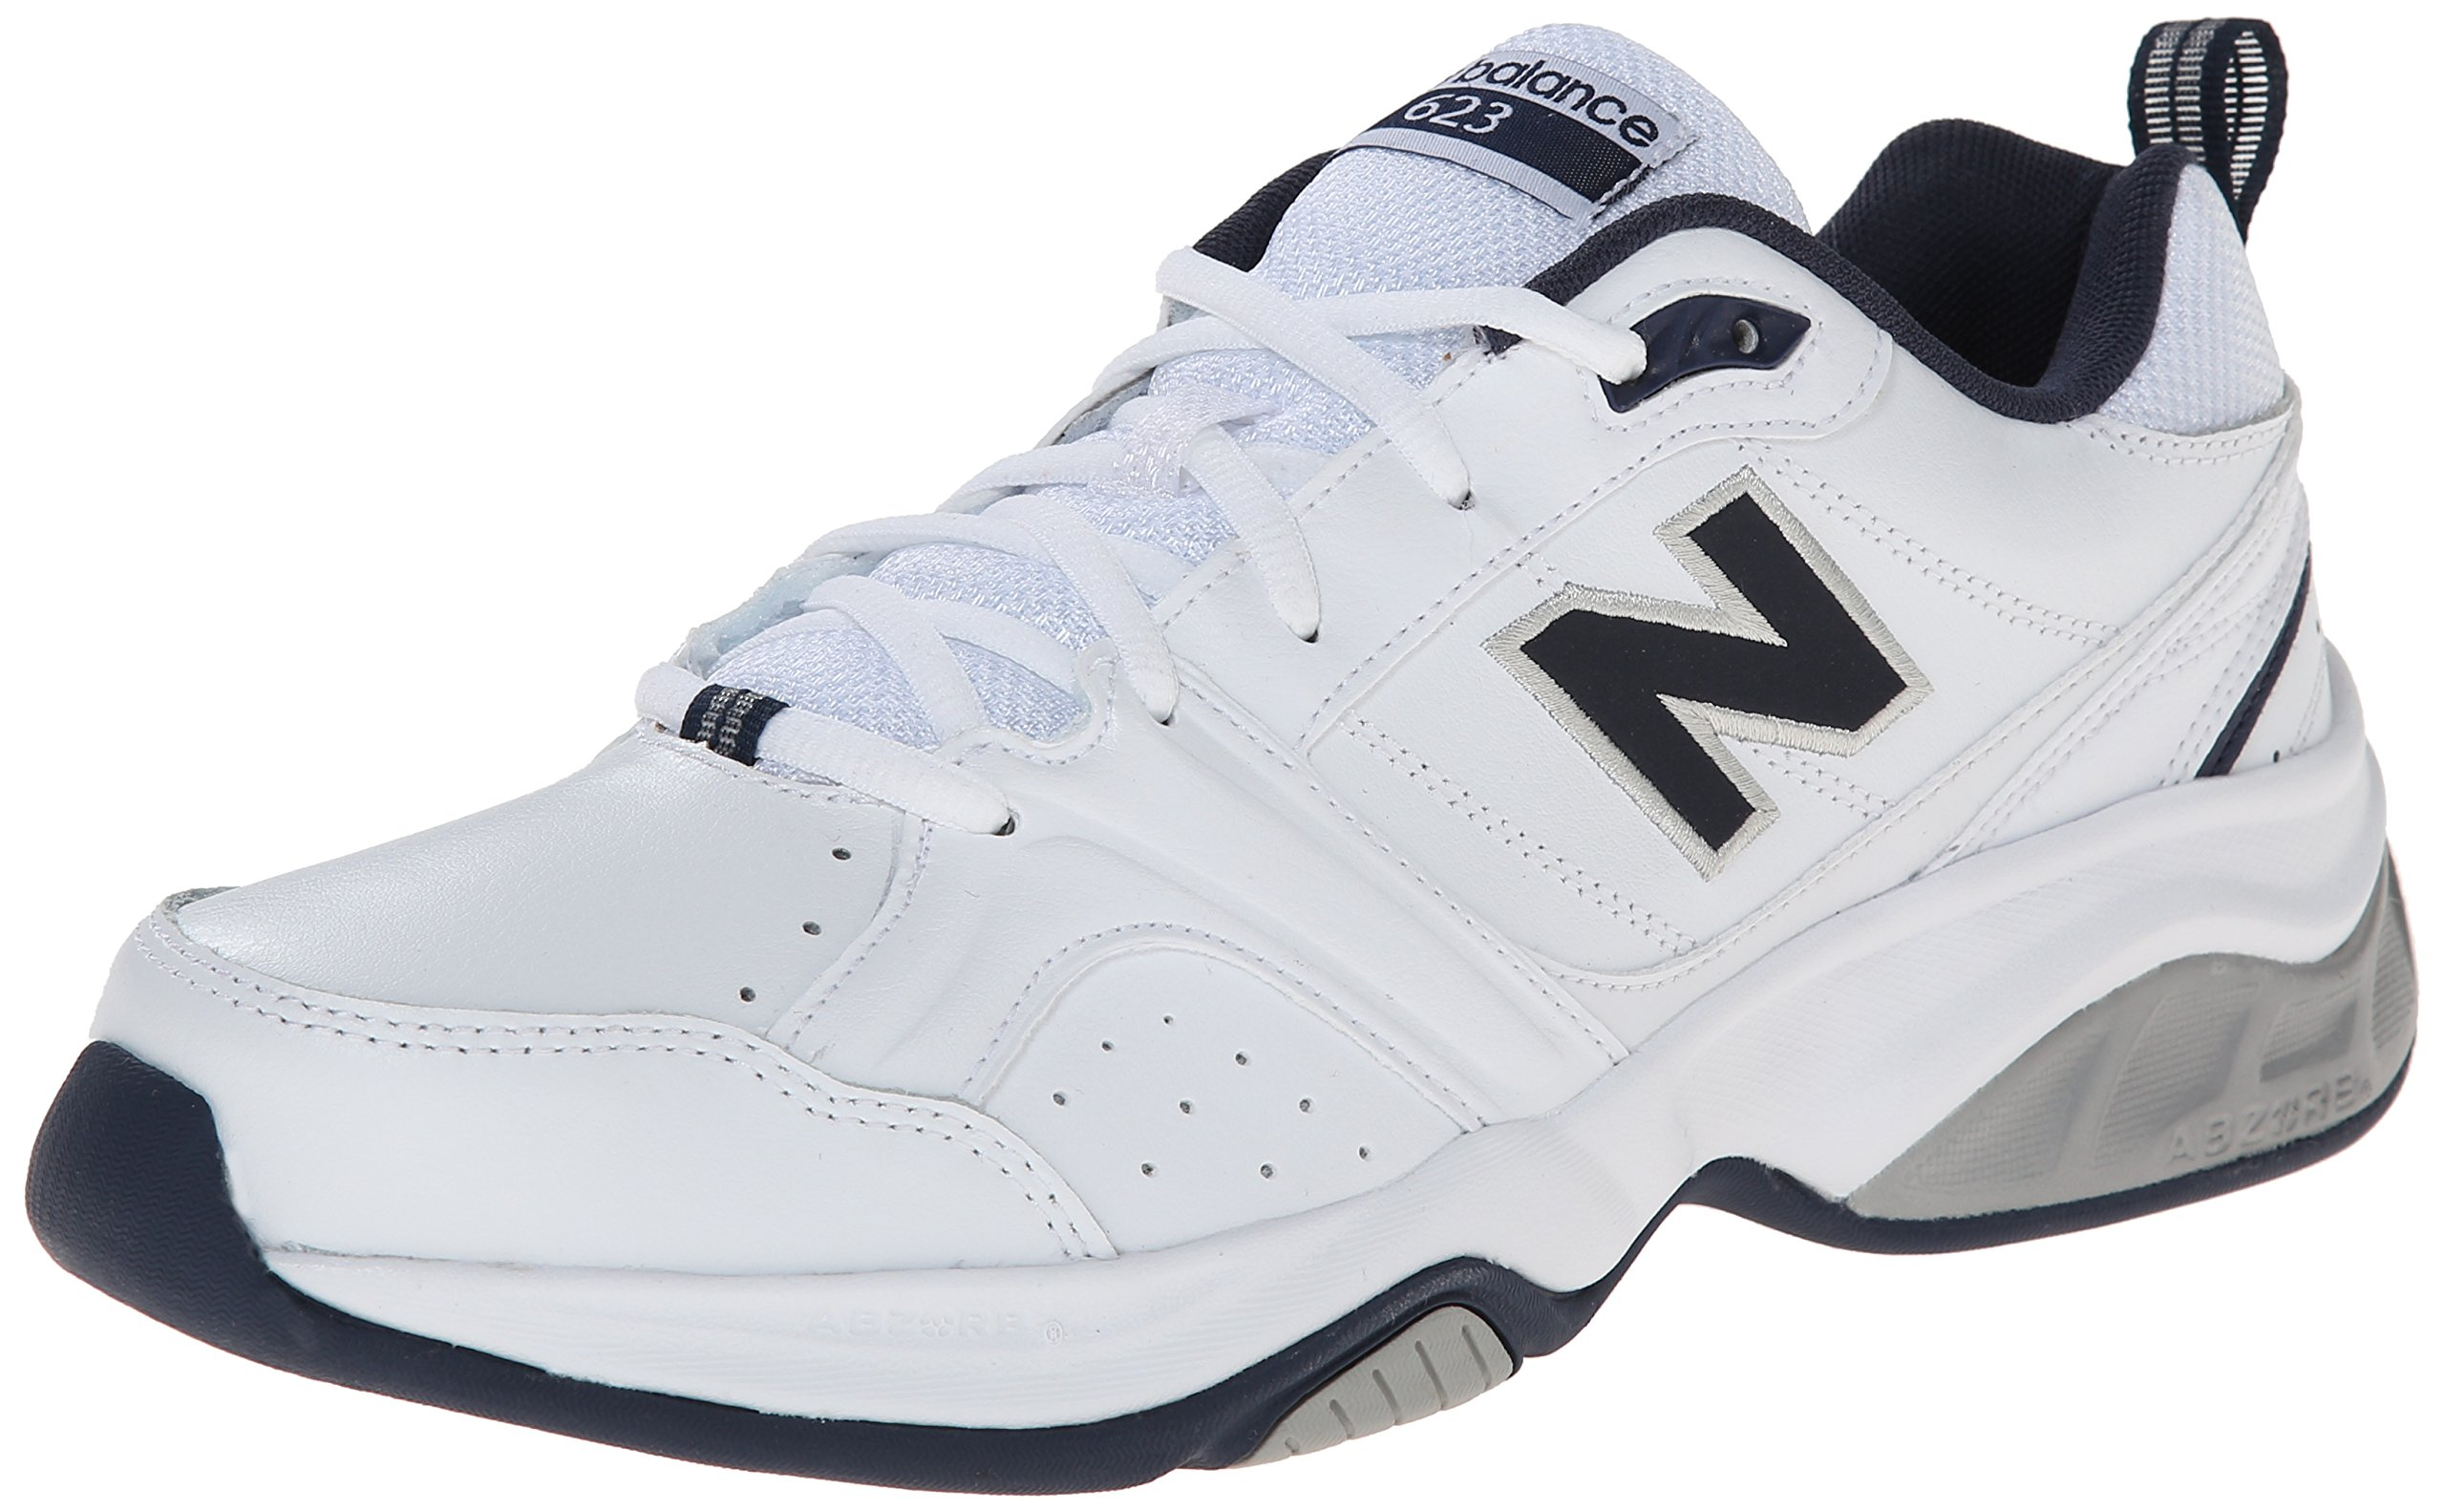 Galleon - New Balance Men's MX623 Cross-Training Shoe ...